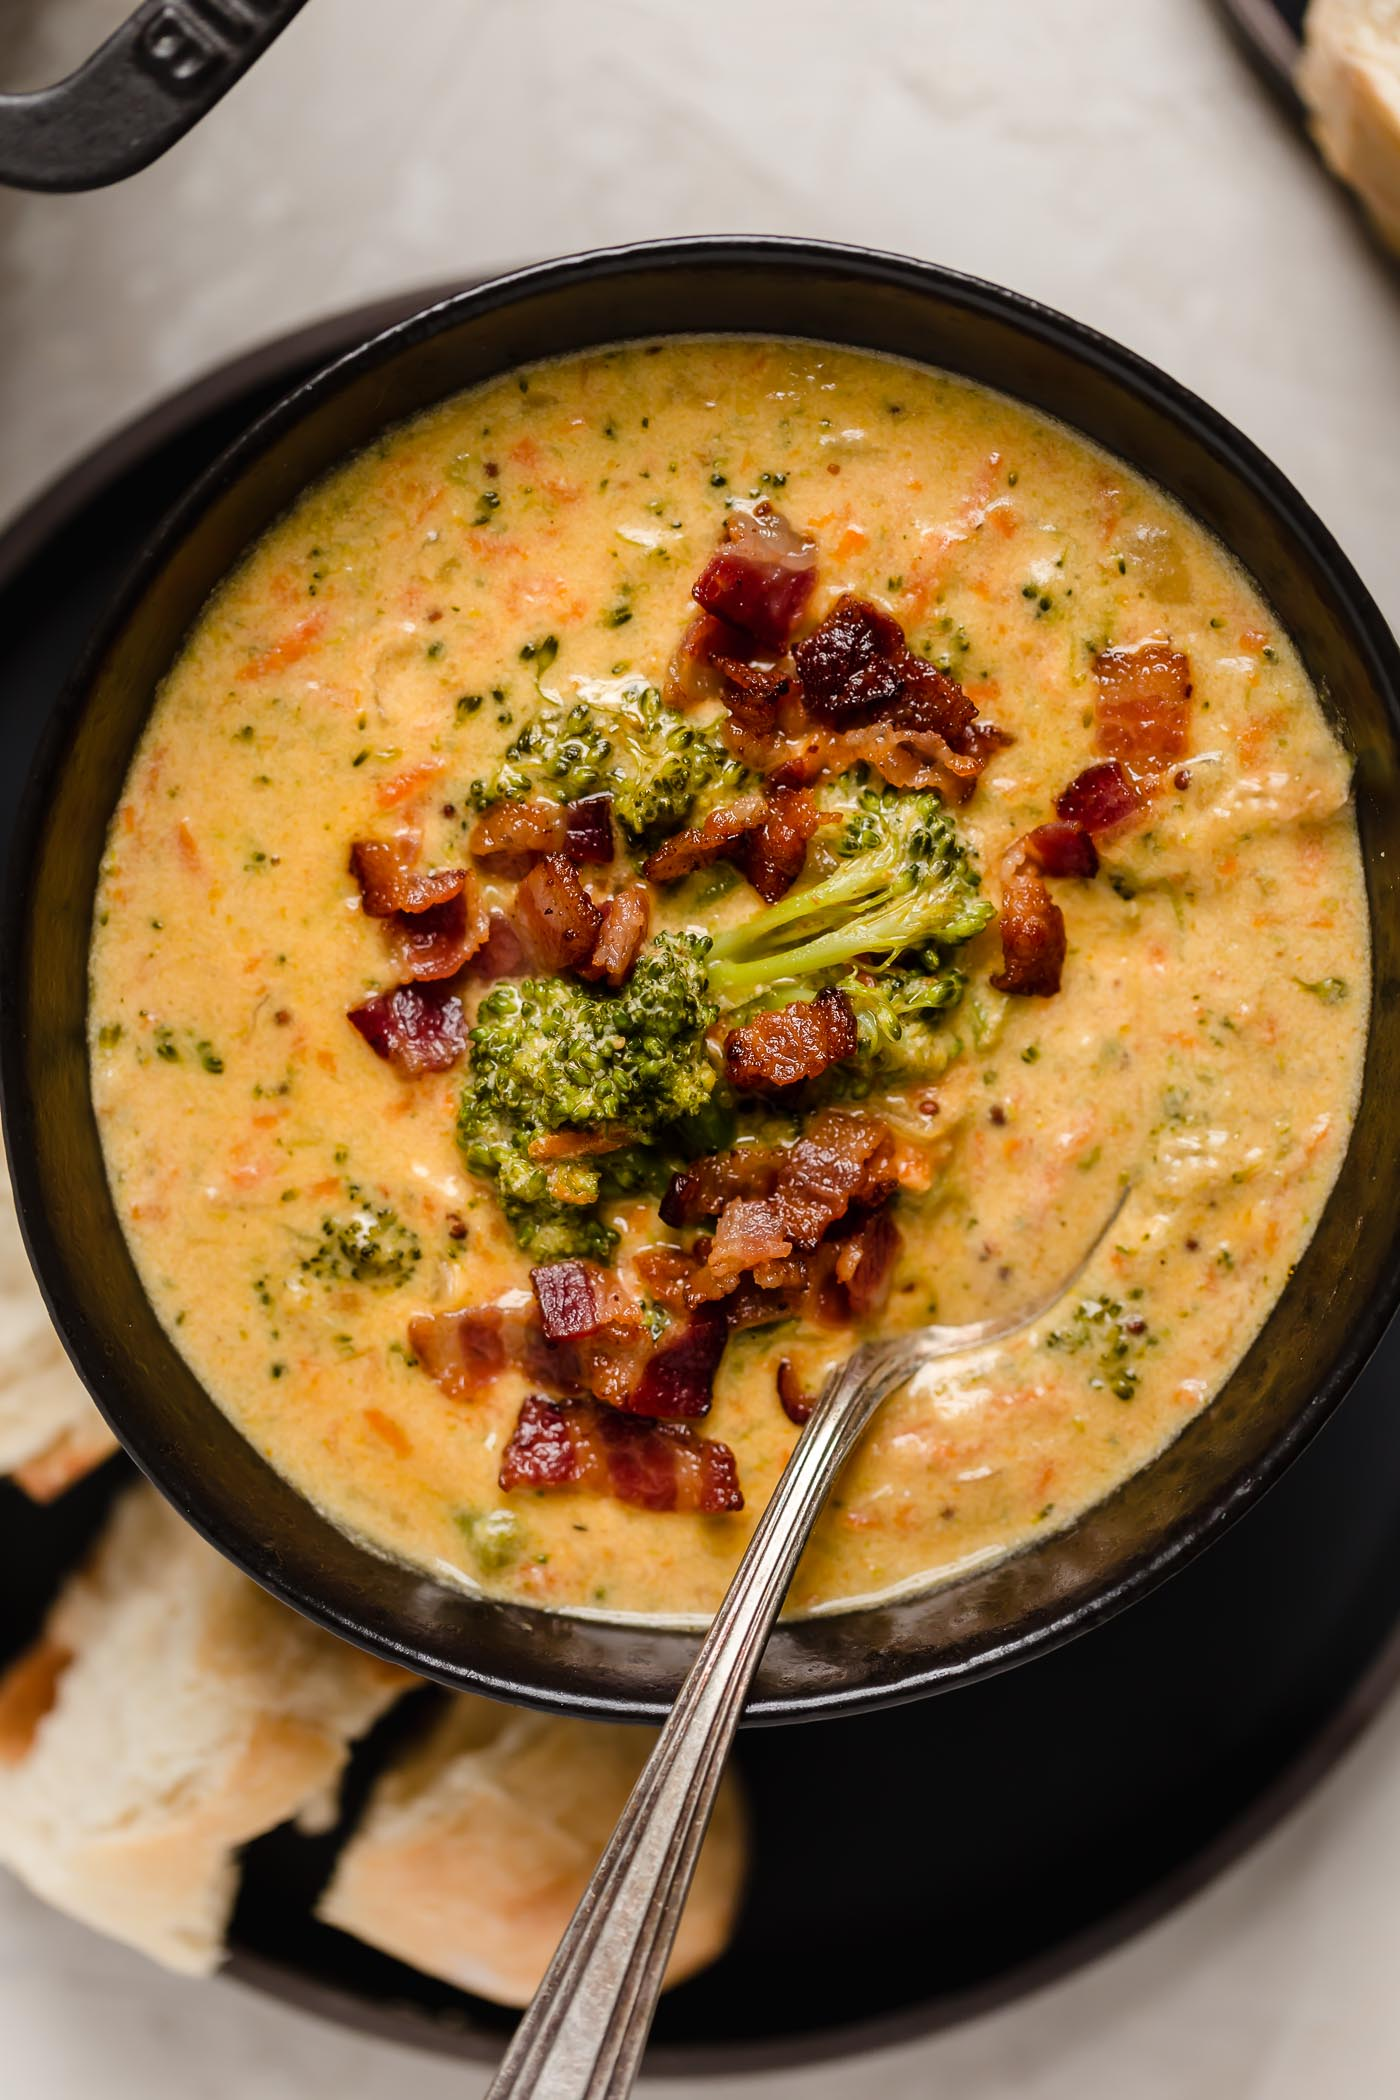 bacon beer cheese broccoli cheddar soup. a cross between two classic comforting soups, beer cheese soup & broccoli cheese soup, this bacon beer cheese broccoli cheddar soup is thick, luscious, creamy, & decadent made with @Tillamook Farmstyle Cut Sharp Cheddar Shredded Cheese. the ultimate comfort food dinner to warm you up on a cold night this winter! #playswellwithbutter #broccolicheddarsoup #broccolicheesesoup #bestbroccolicheesesoup #creamybroccolicheesesoup #beercheesesoup #bestbeercheesesoup #baconbeercheesesoup #comfortfood #comfortfoodrecipes #ad #Tillamook_Partner #TillamookCheese